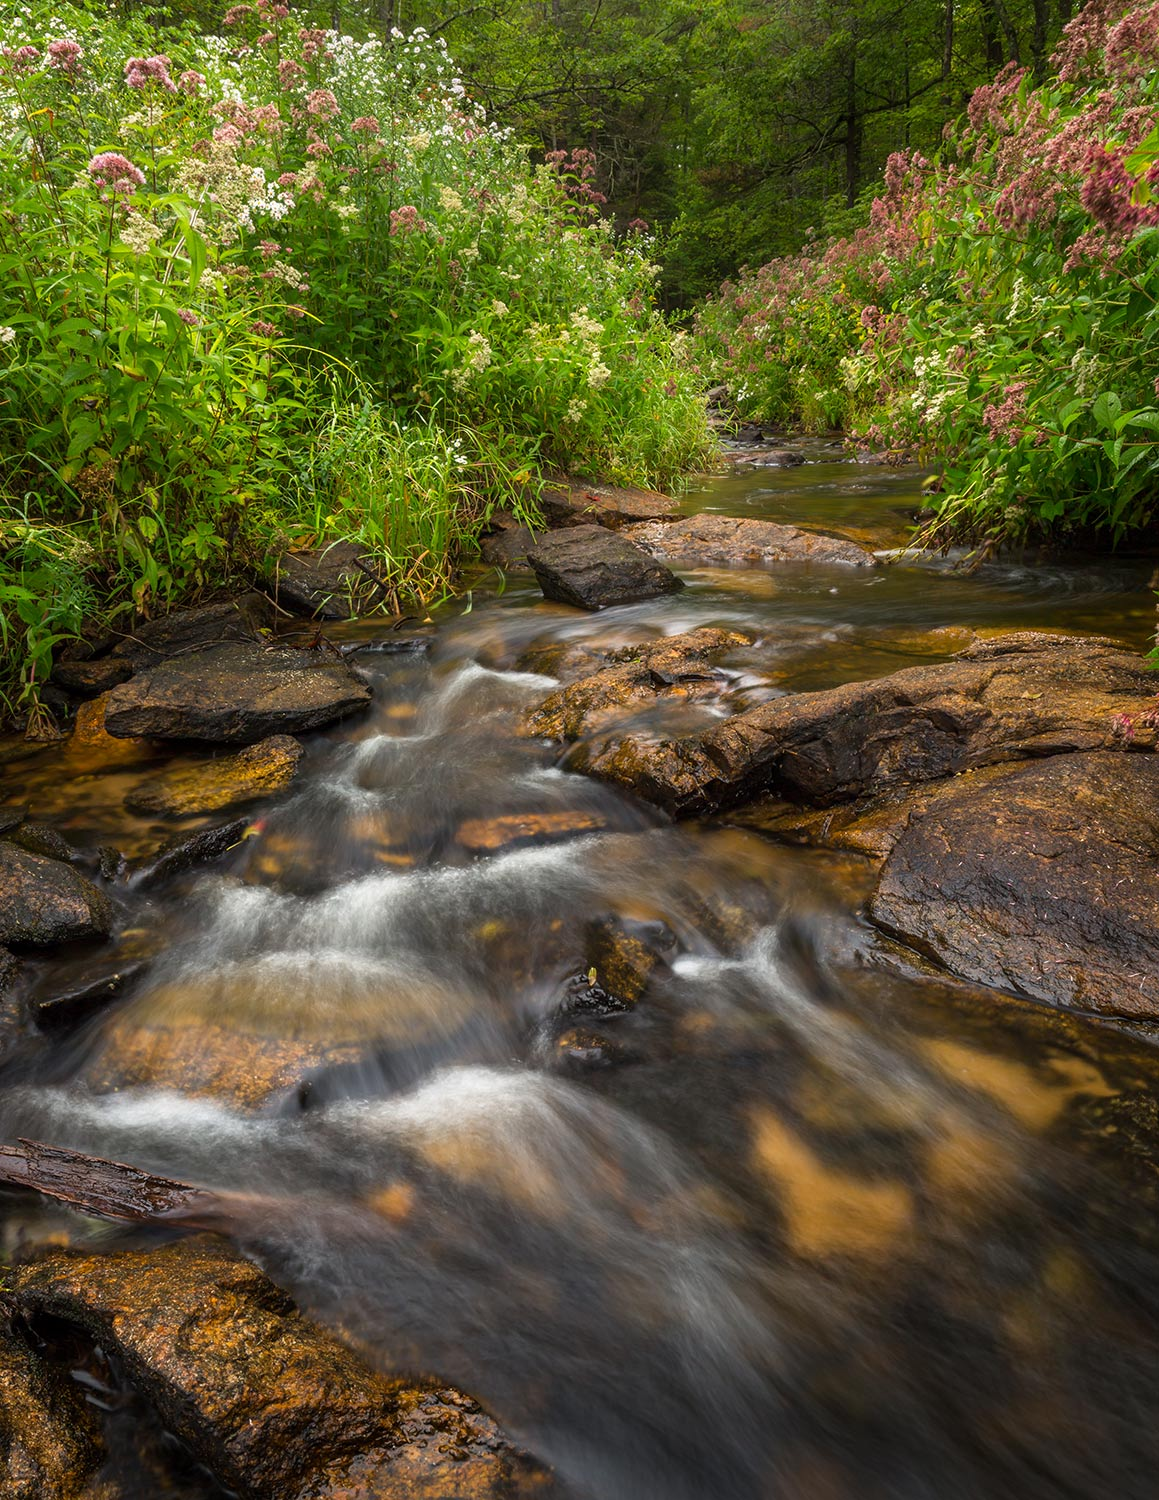 Cold Brook surrounded by wild flowers.